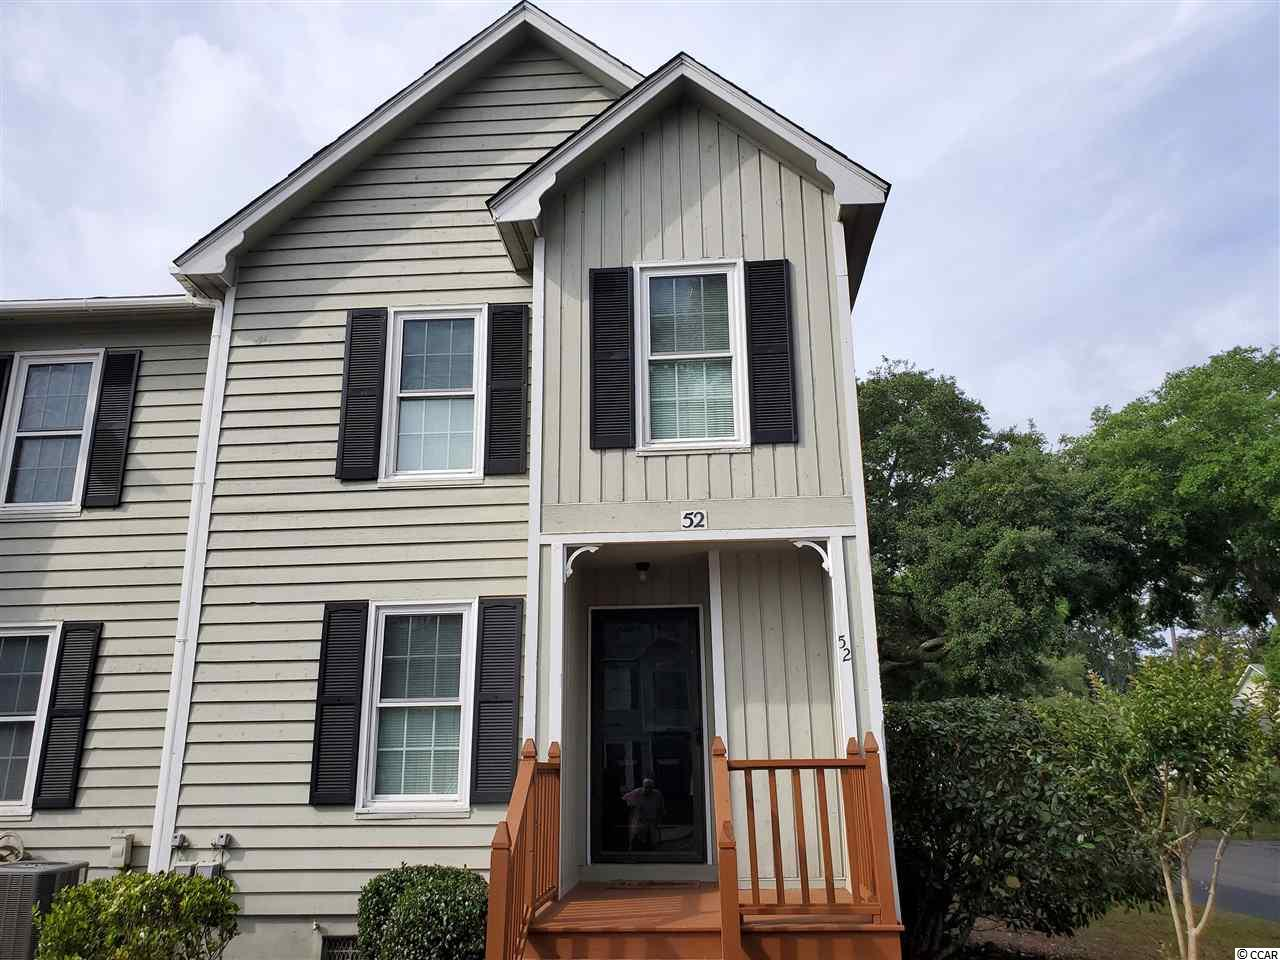 This end unit has all new stainless appliances in the kitchen. There is also new hardware on kitchen cabinets and baths. They have just installed new carpet on stairs and both bedrooms. New lighting in baths. New ceramic tile. Freshly painted throughout. There are two Master Suites with sitting areas and private baths. The HOA has recently enlarged the deck out back. There is attached storage on deck. Moss Creek is a low density townhome community nestled among mature trees and landscaping. Amenities include pool, tennis courts, clubhouse and friendly neighbors. Quiet area, only a short walk to the waterfront Murrells Inlet with Restaurants closeby. Easy access to shopping, dining, golf courses, hospital and other healthcare facilities.